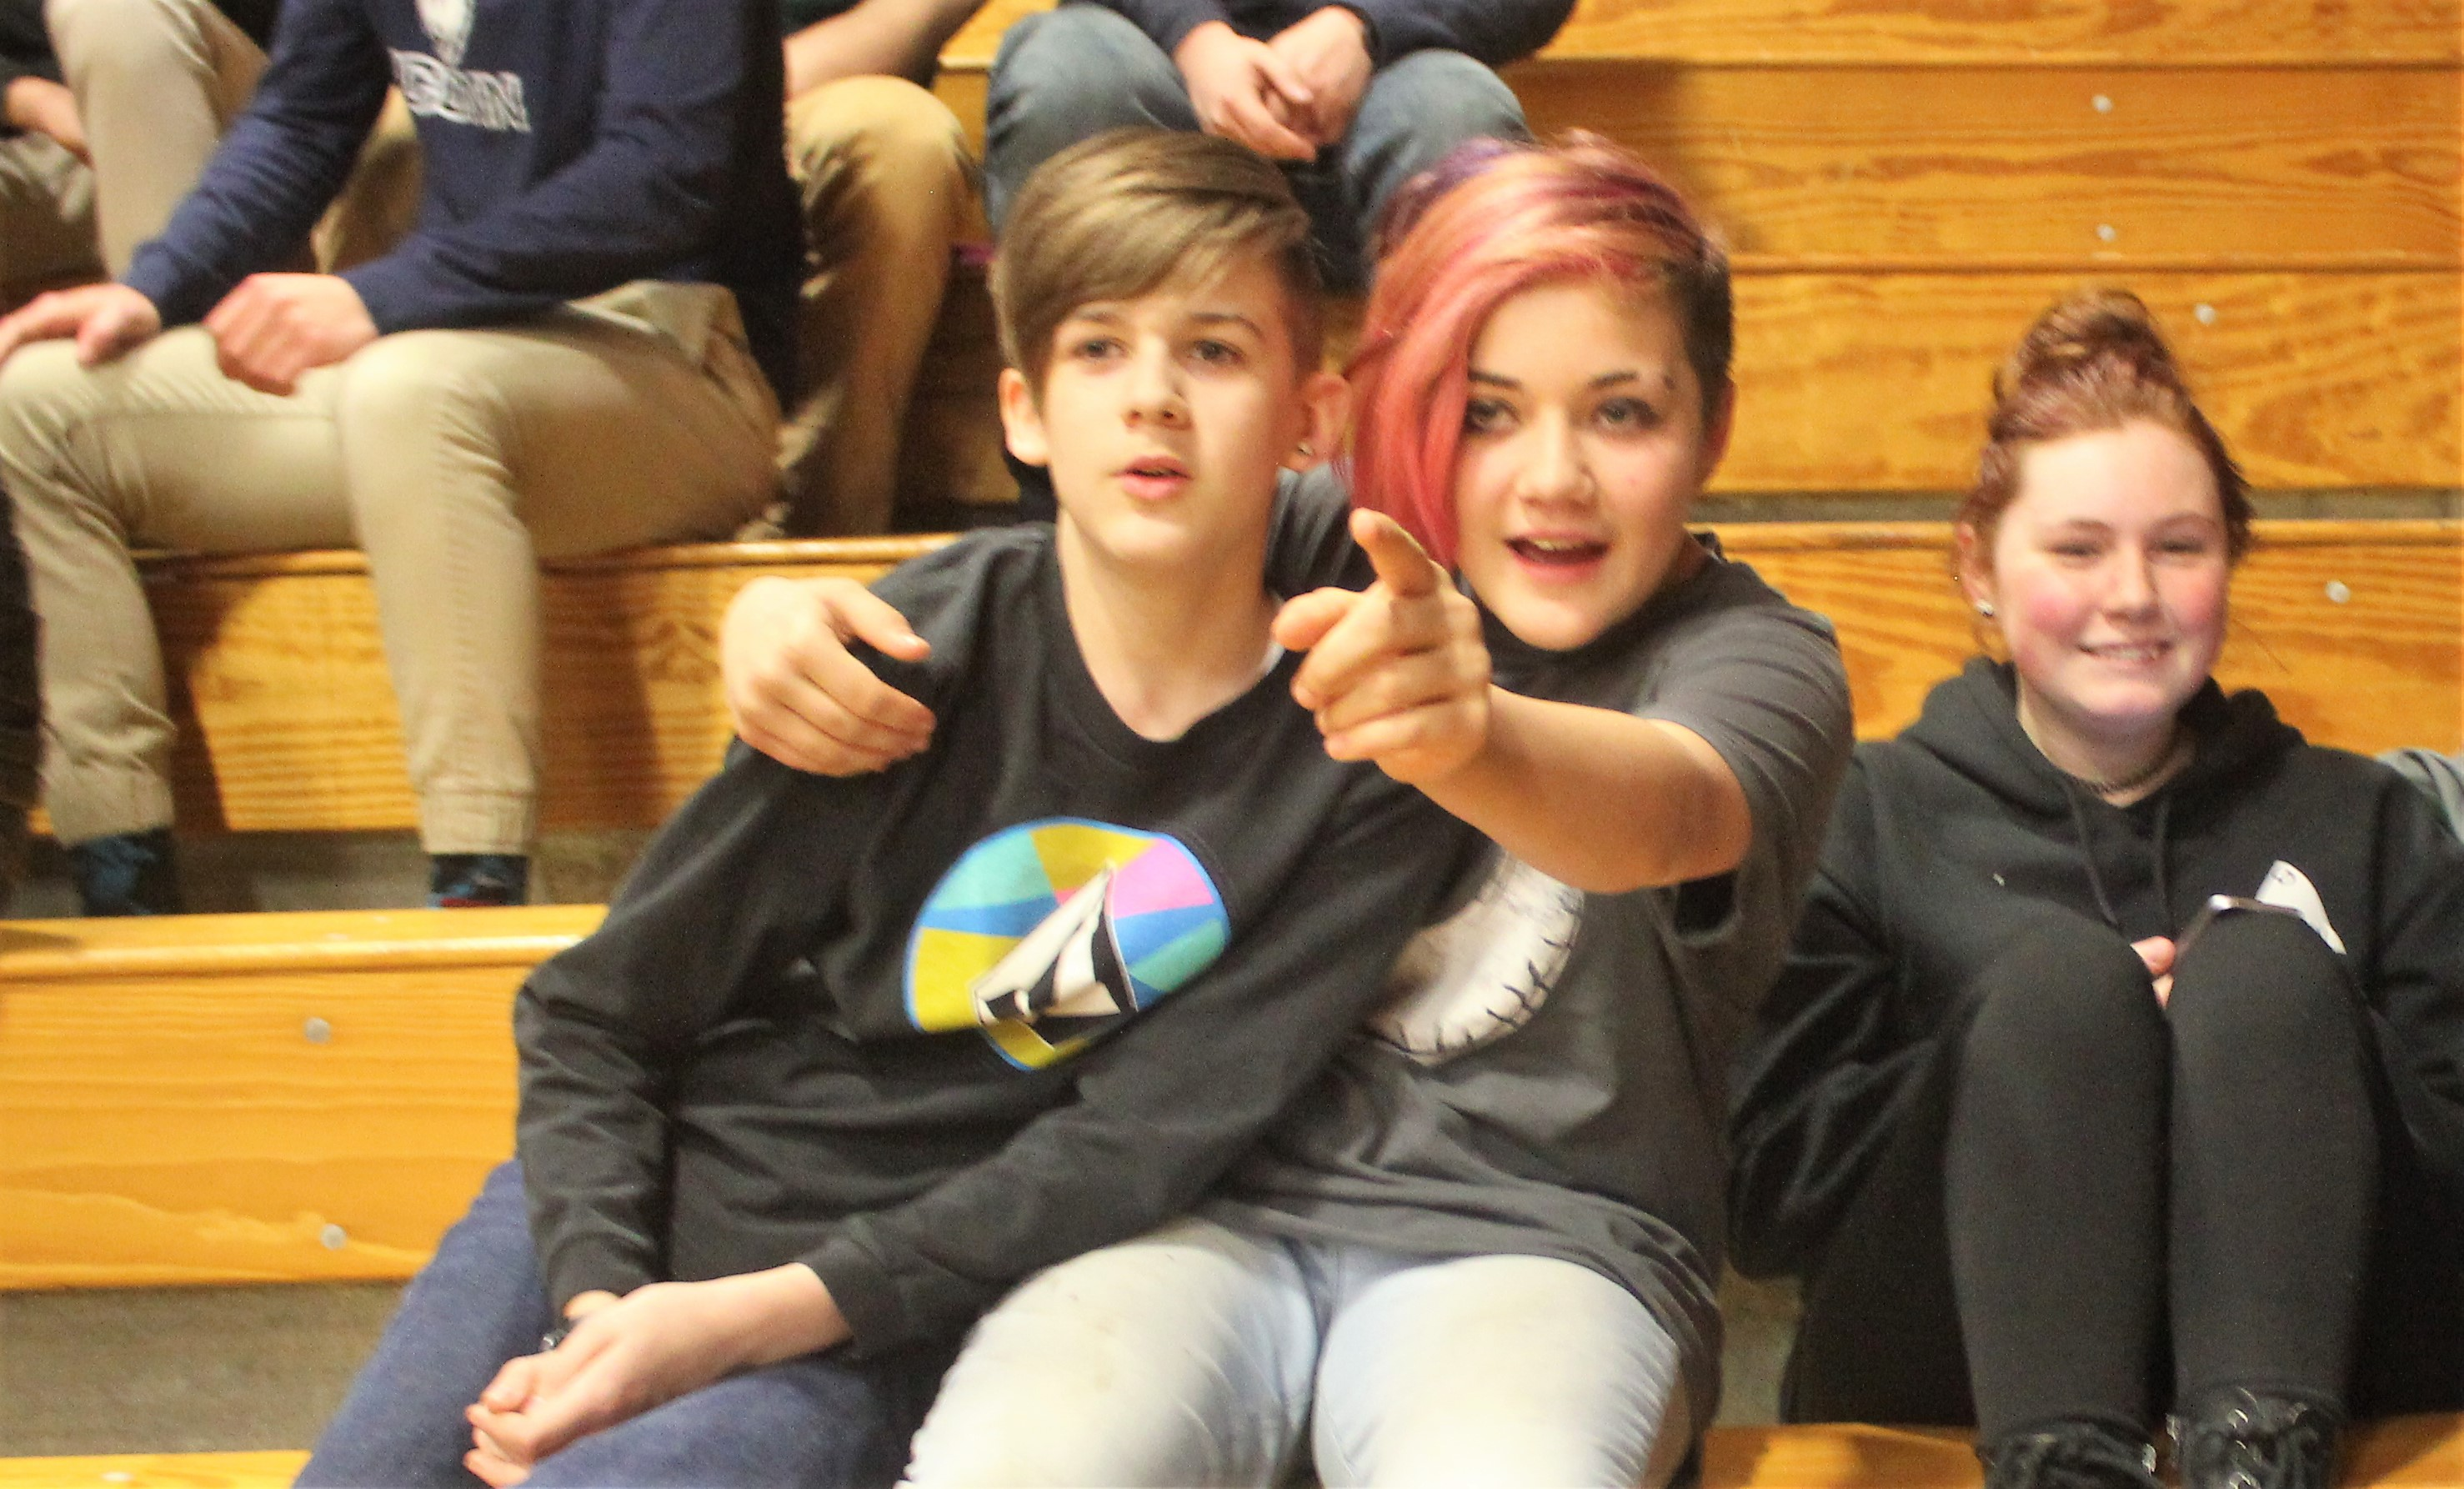 Former pro wrestler inspires, moves Valley students with